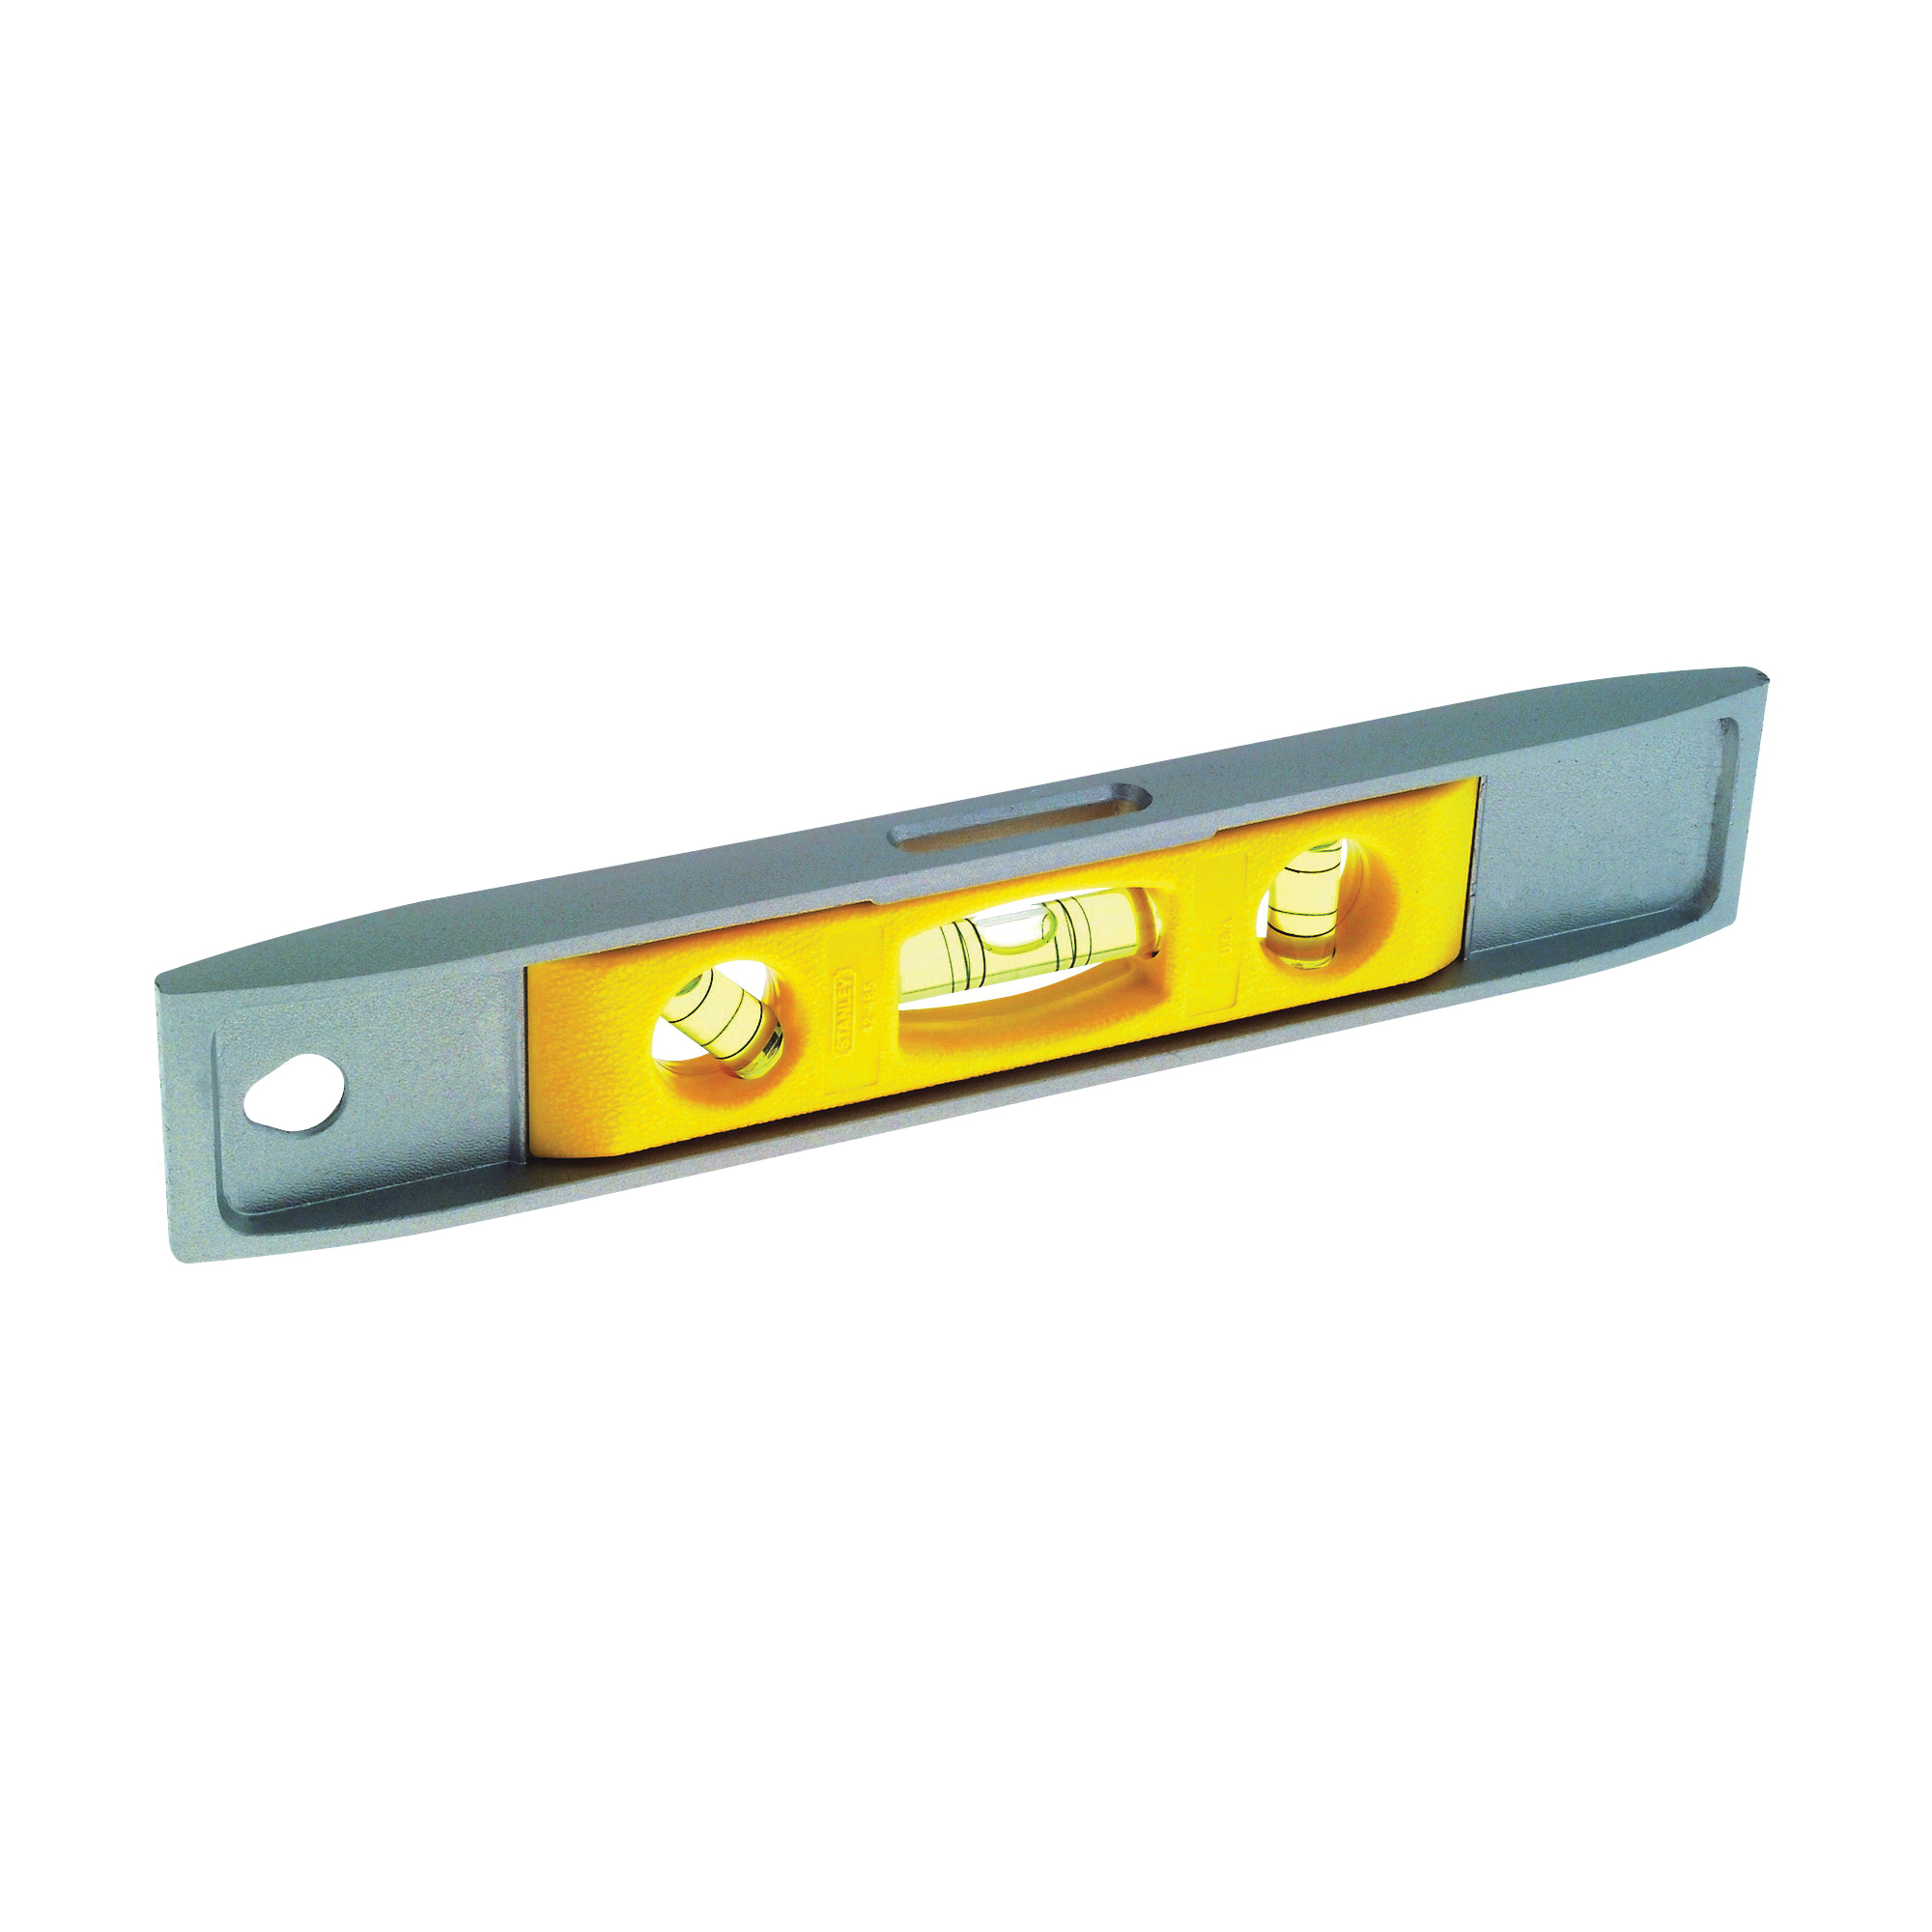 Picture of STANLEY 42-465 Torpedo Level, 9 in L, 3 -Vial, 1 -Hang Hole, Magnetic, Aluminum, Silver/Yellow